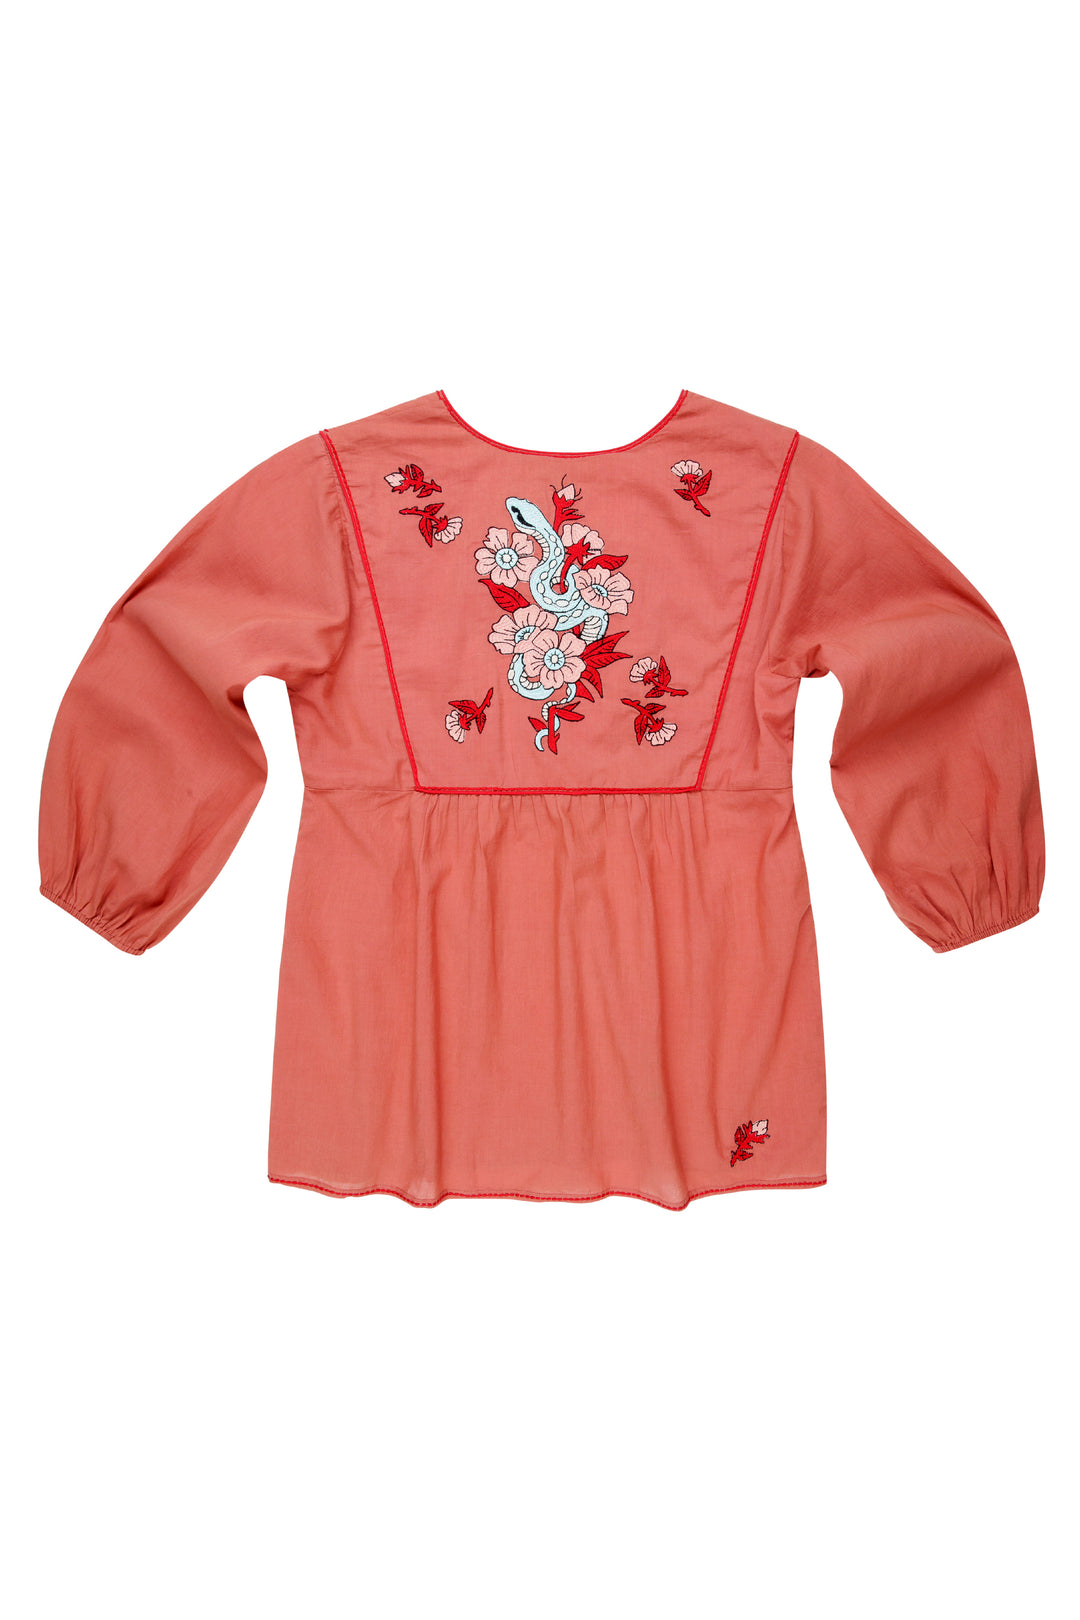 clearance: Tainted Love Embroidered Blouse Ochre